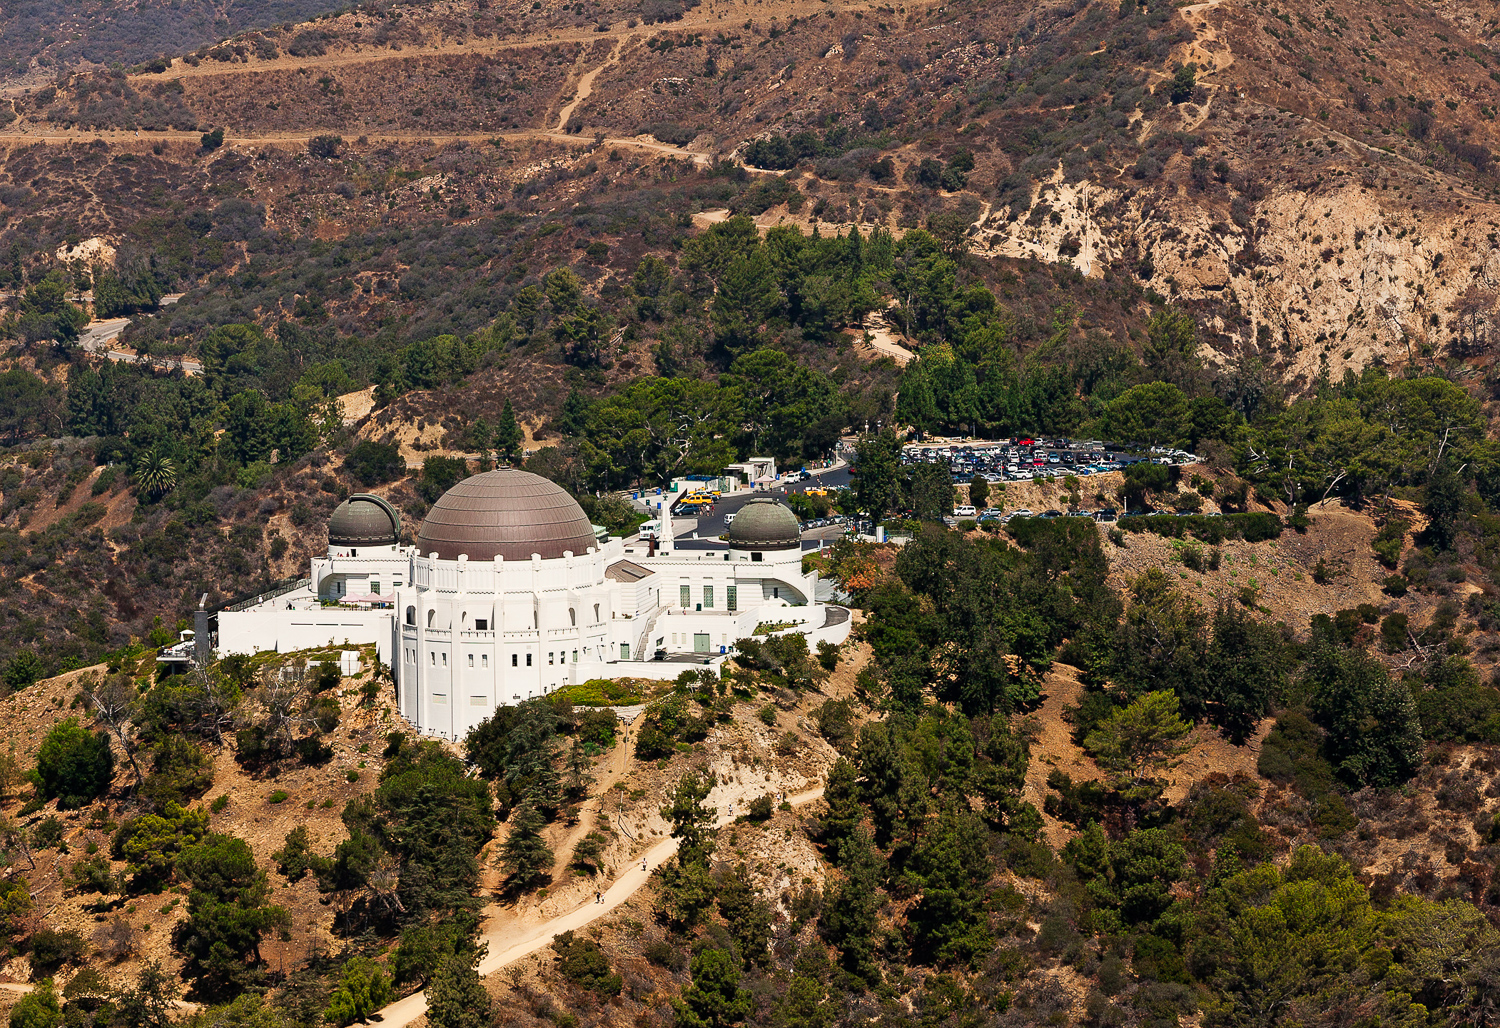 Aerial View of Griffith Observatoy